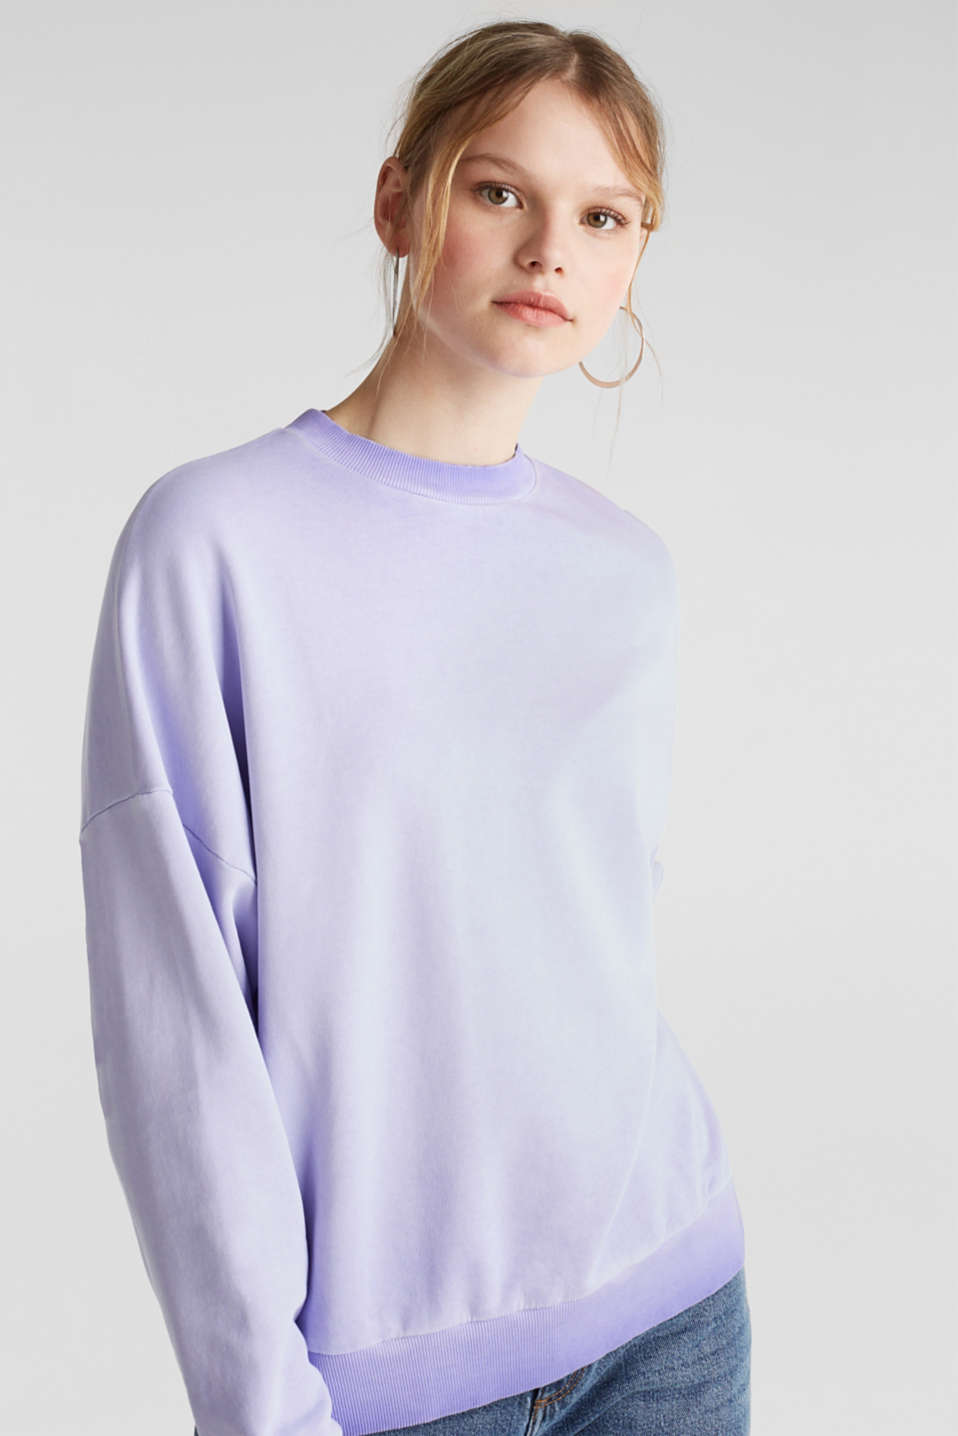 edc - Sweatshirt with batwing sleeves, 100% cotton